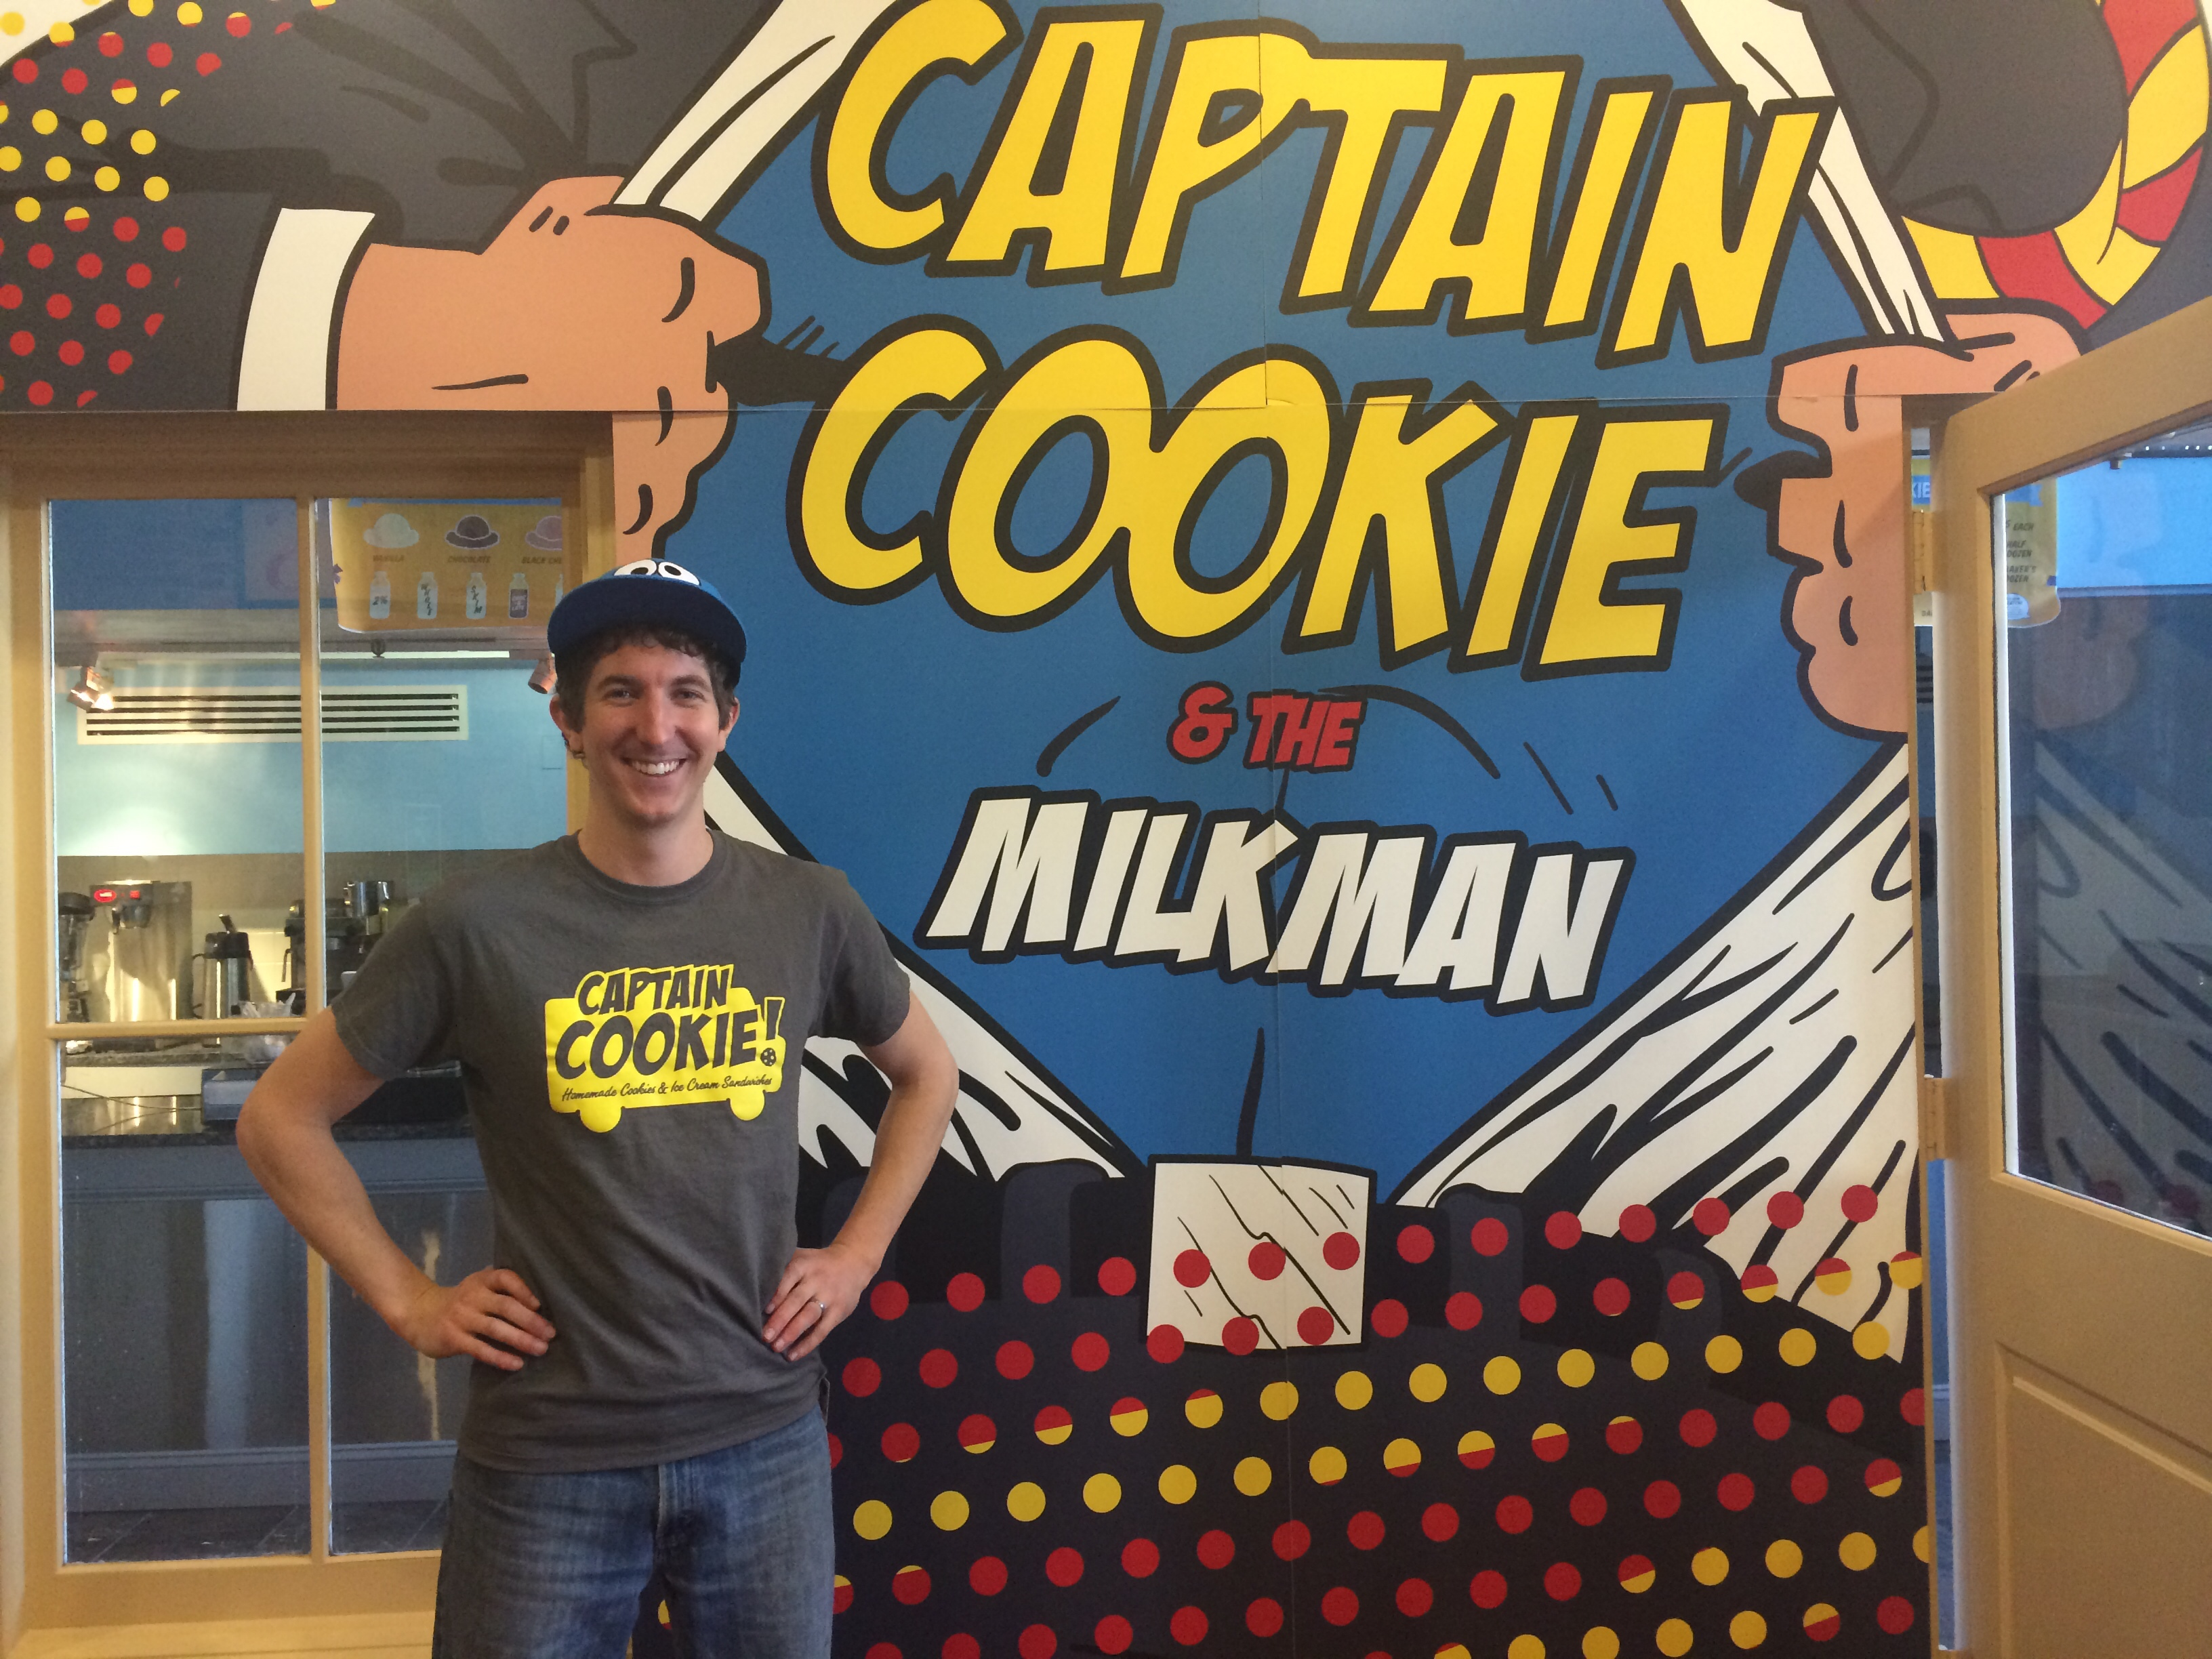 Hungry for a sweet treat? Captain Cookie saves the day with his D.C. shop